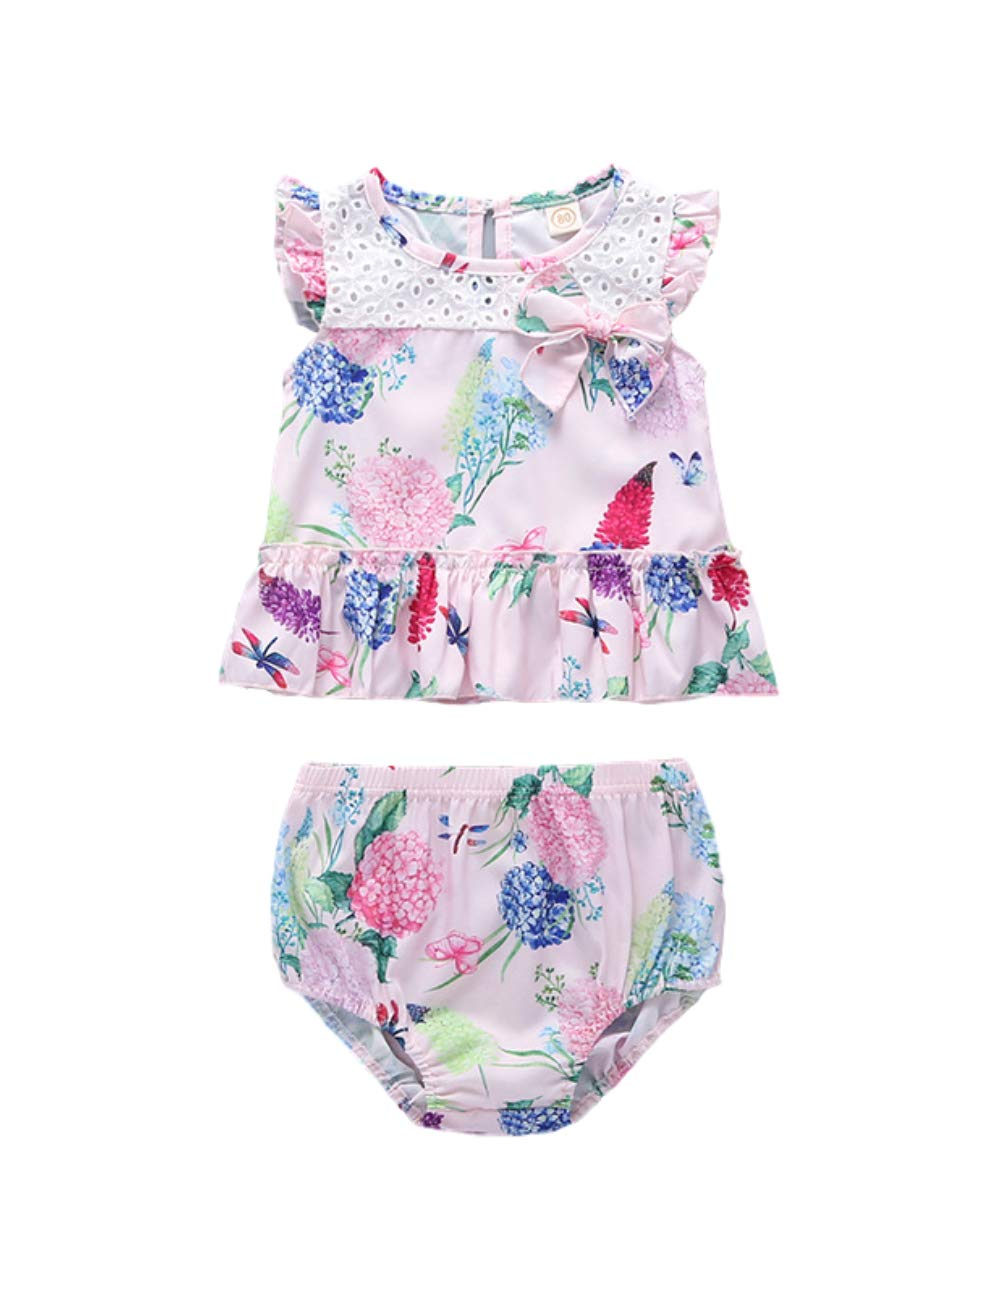 Yoveme Toddler Little Kid Girls Summer Clothes Short Outfits Sleeveless Halter Ruffled Top Floral Shorts Set